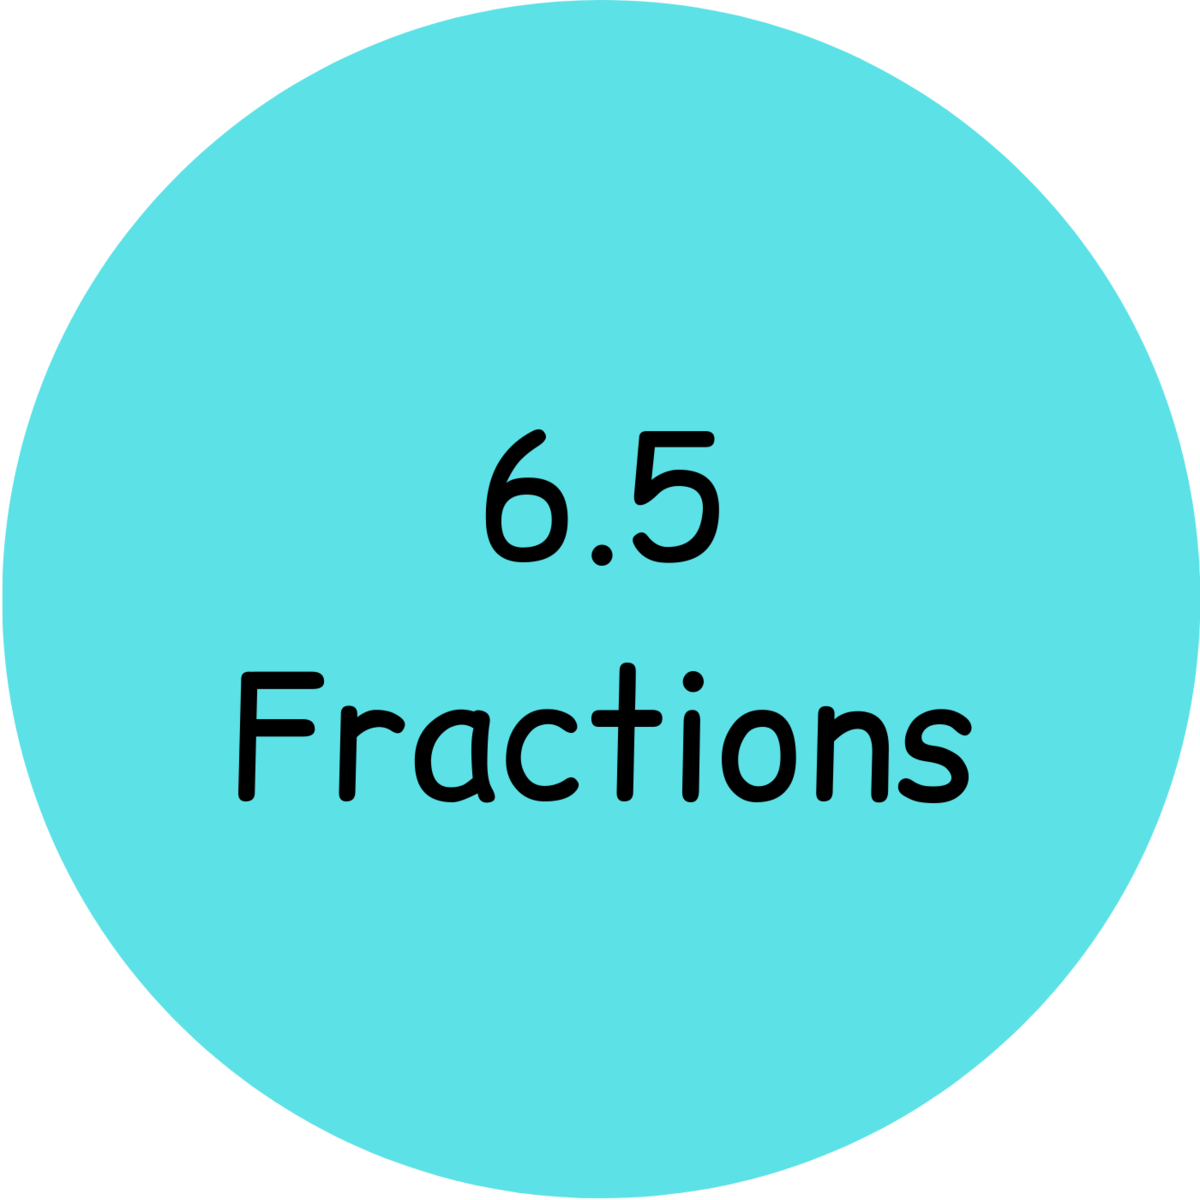 6.5 Fractions